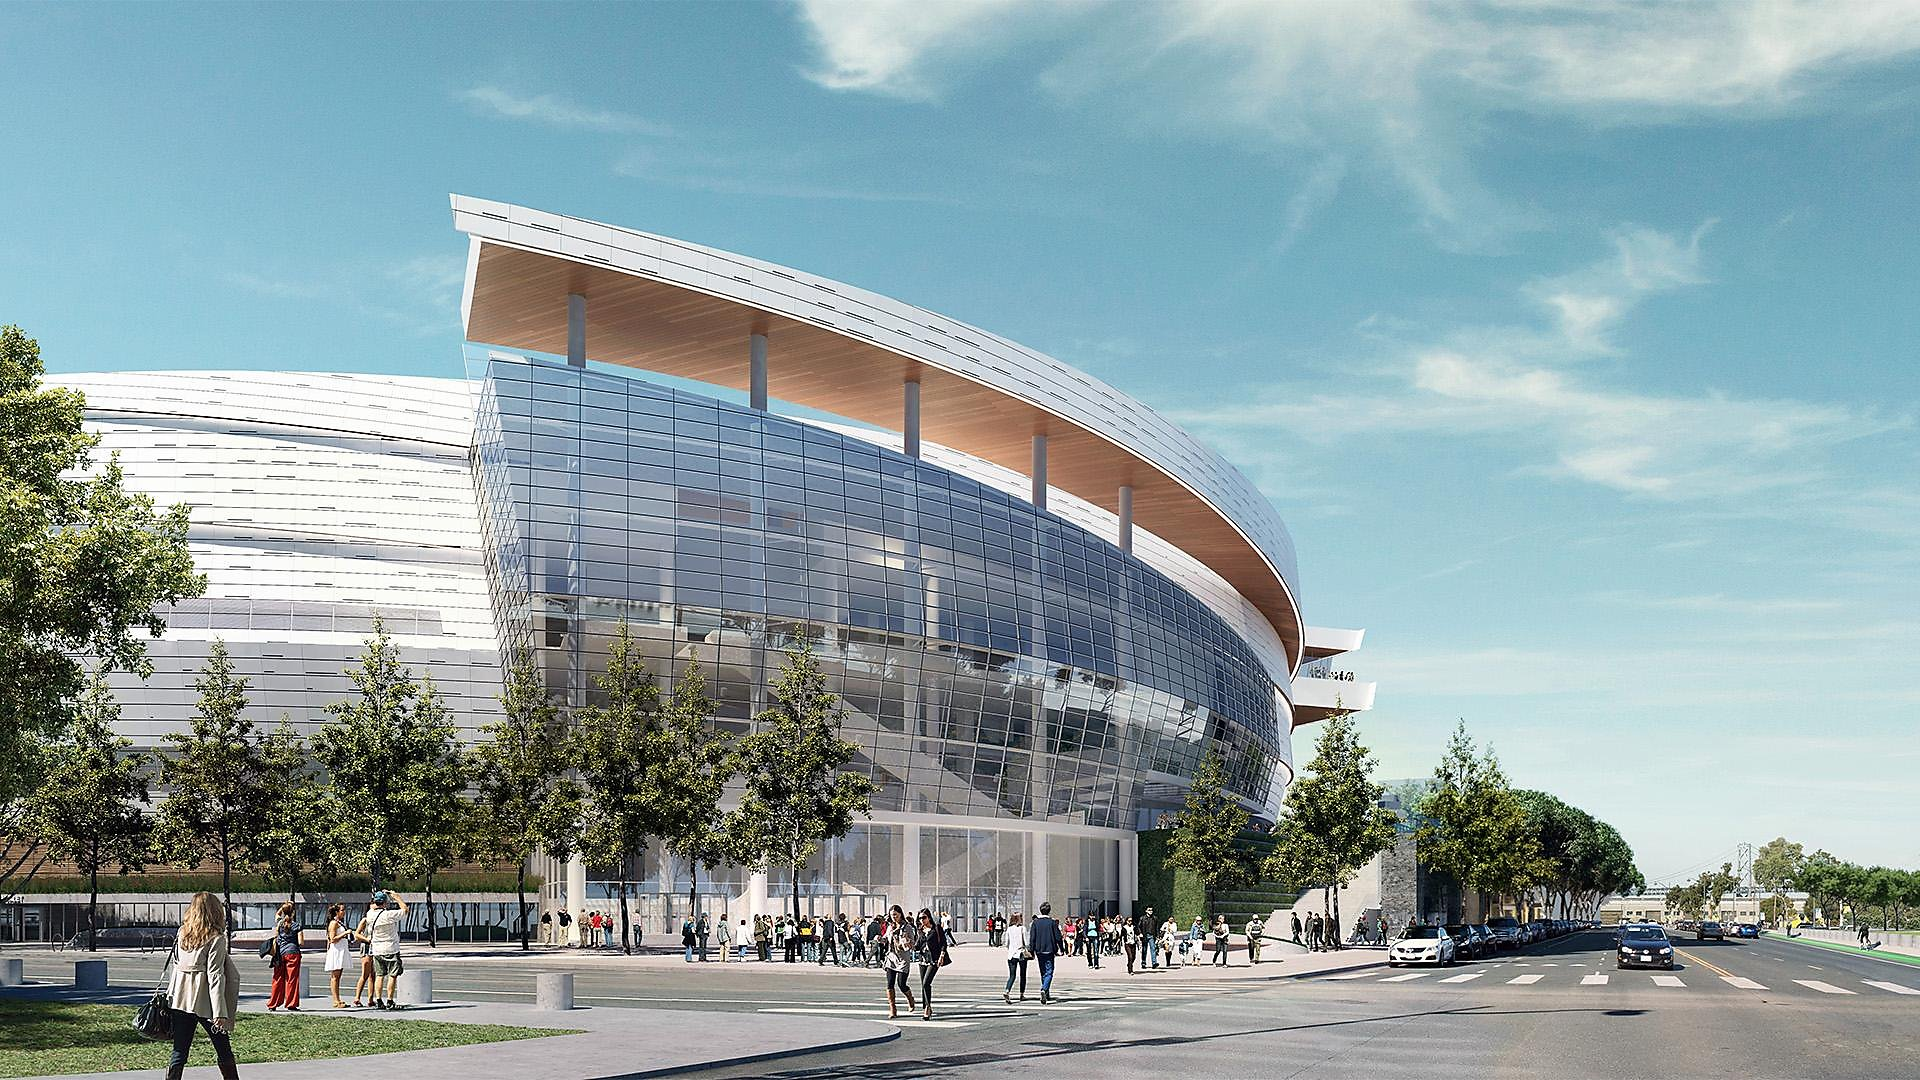 Warriors unveil local restaurants for SF\'s Chase Center arena - SFGate